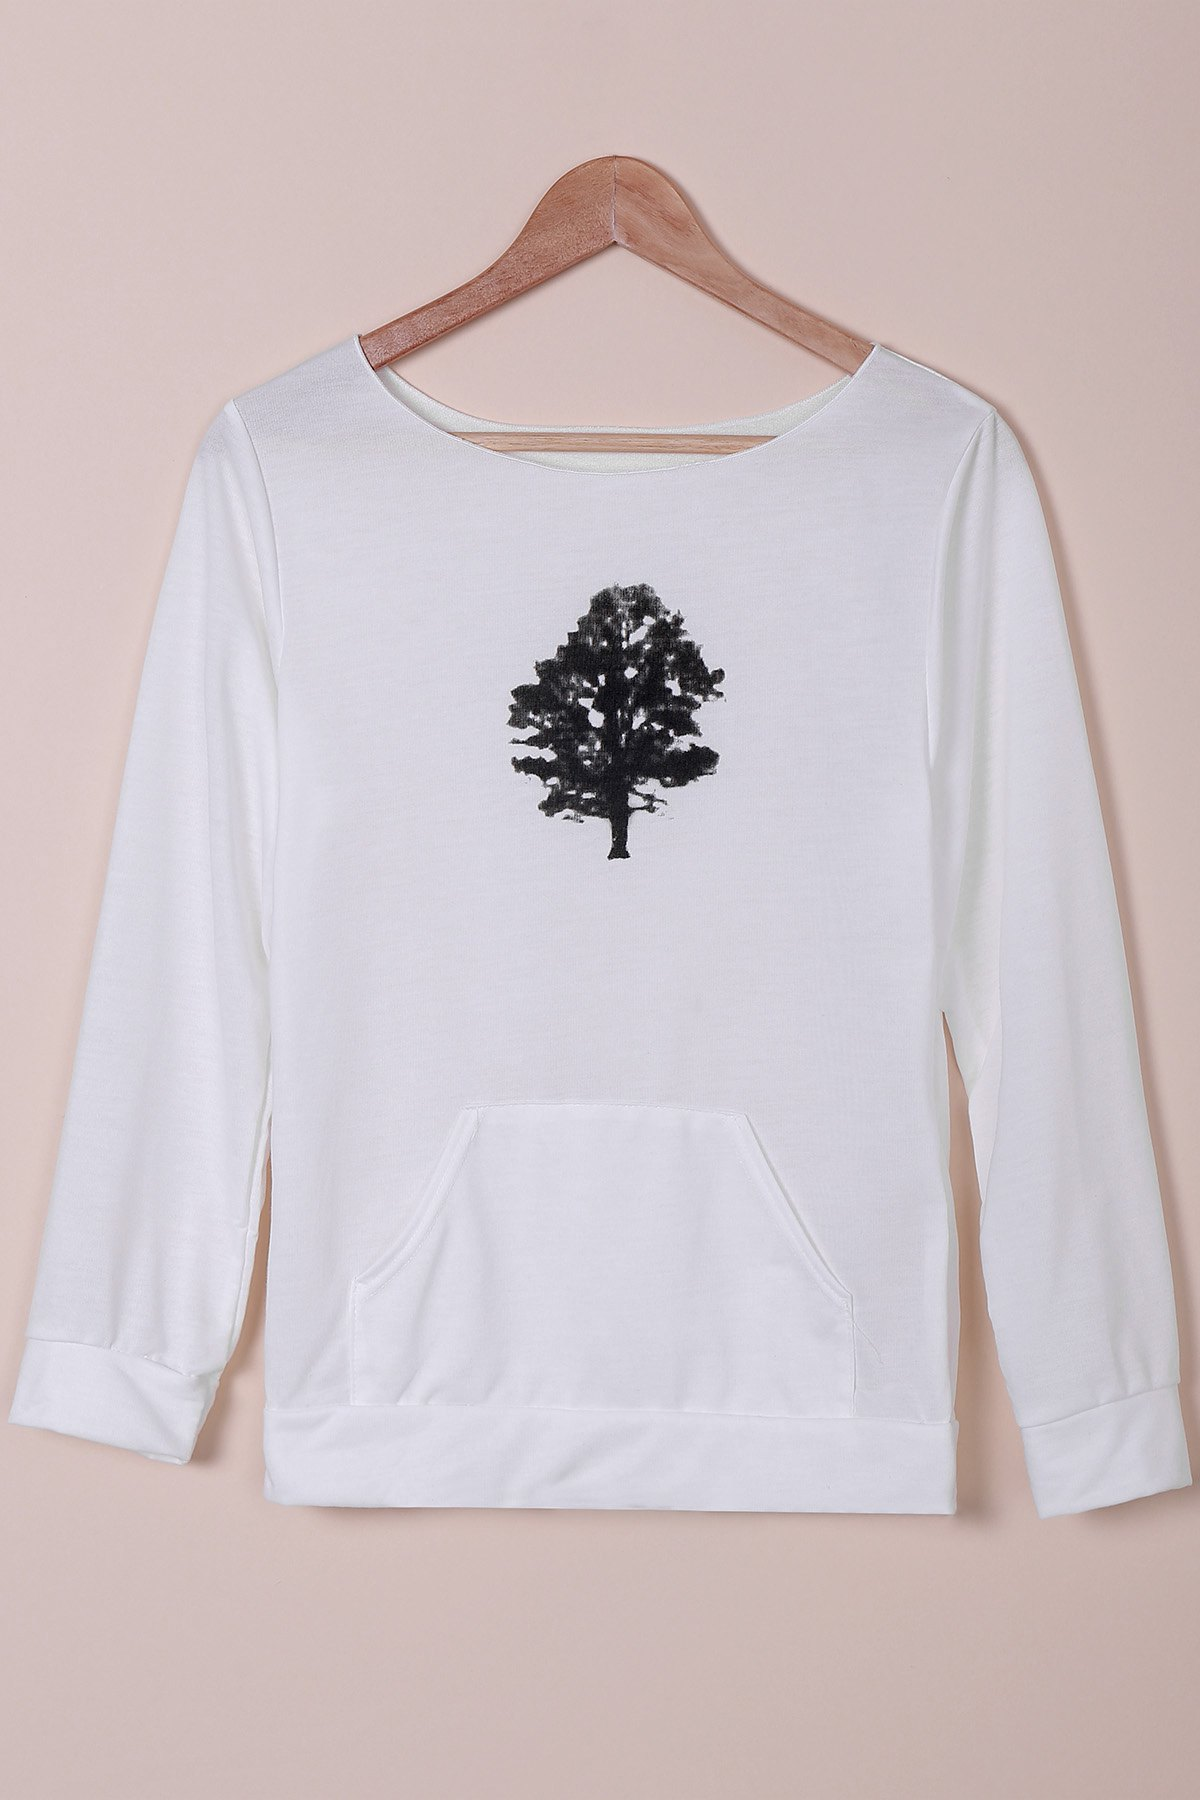 Women's Chic Plants Print Long Sleeve Sweatshirt - WHITE S